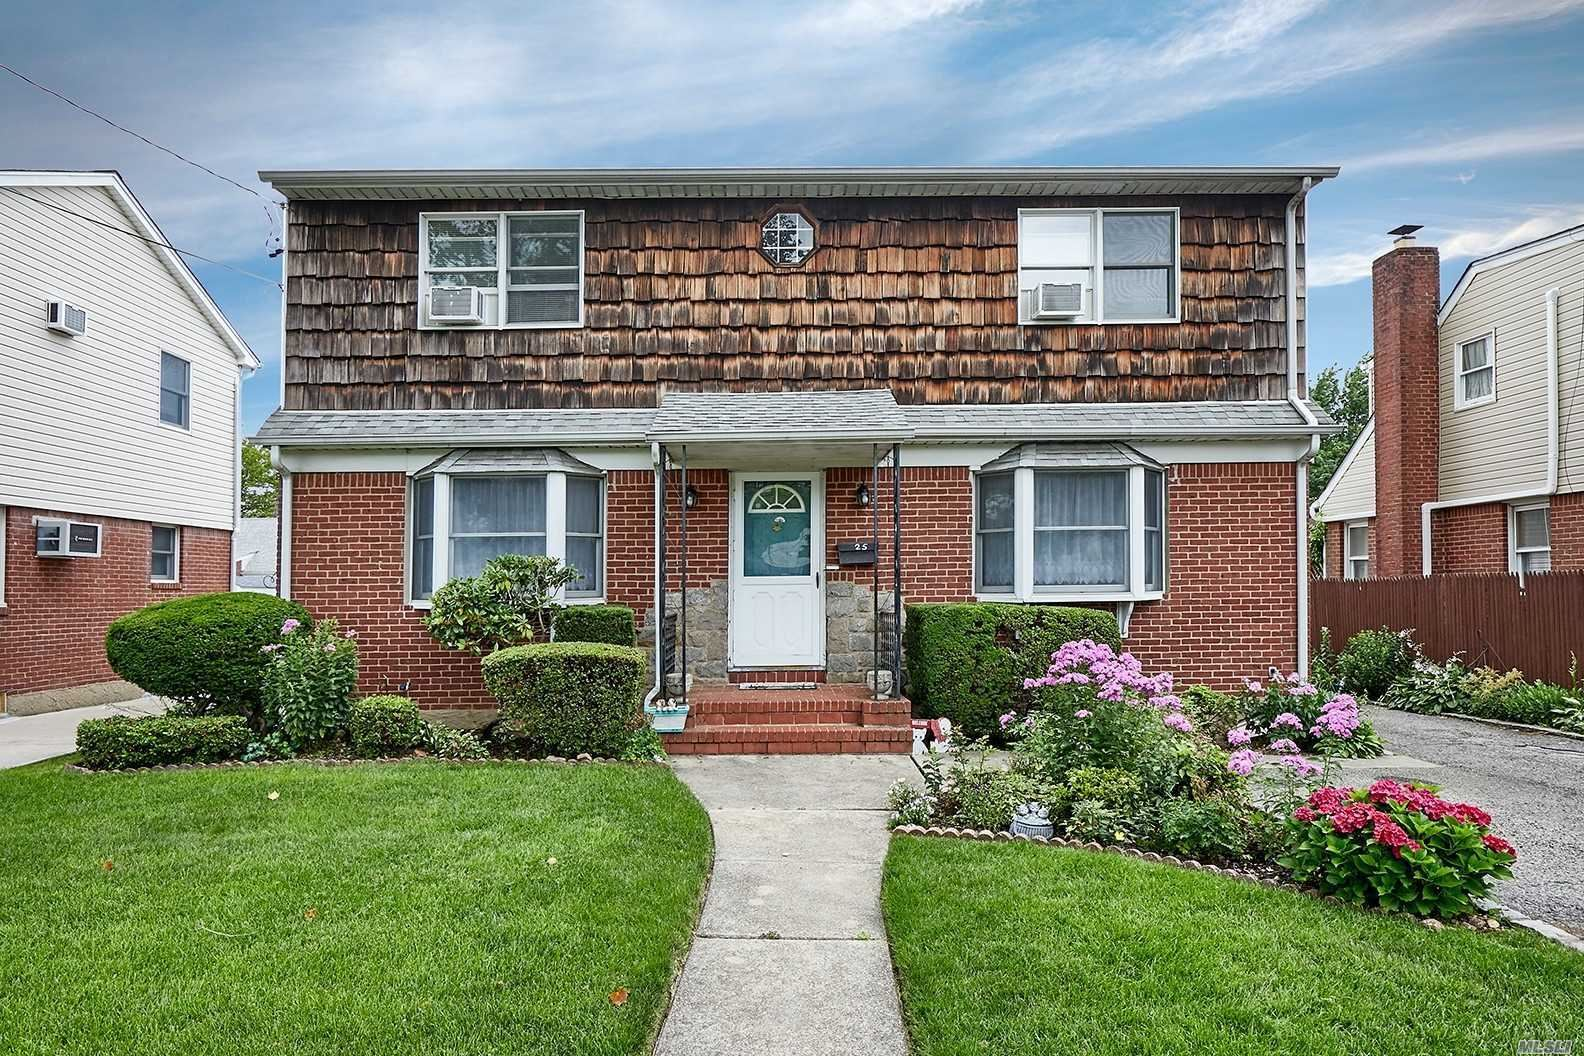 25 Cherry Ln, Carle Place, NY 11514 - MLS#: 3232221